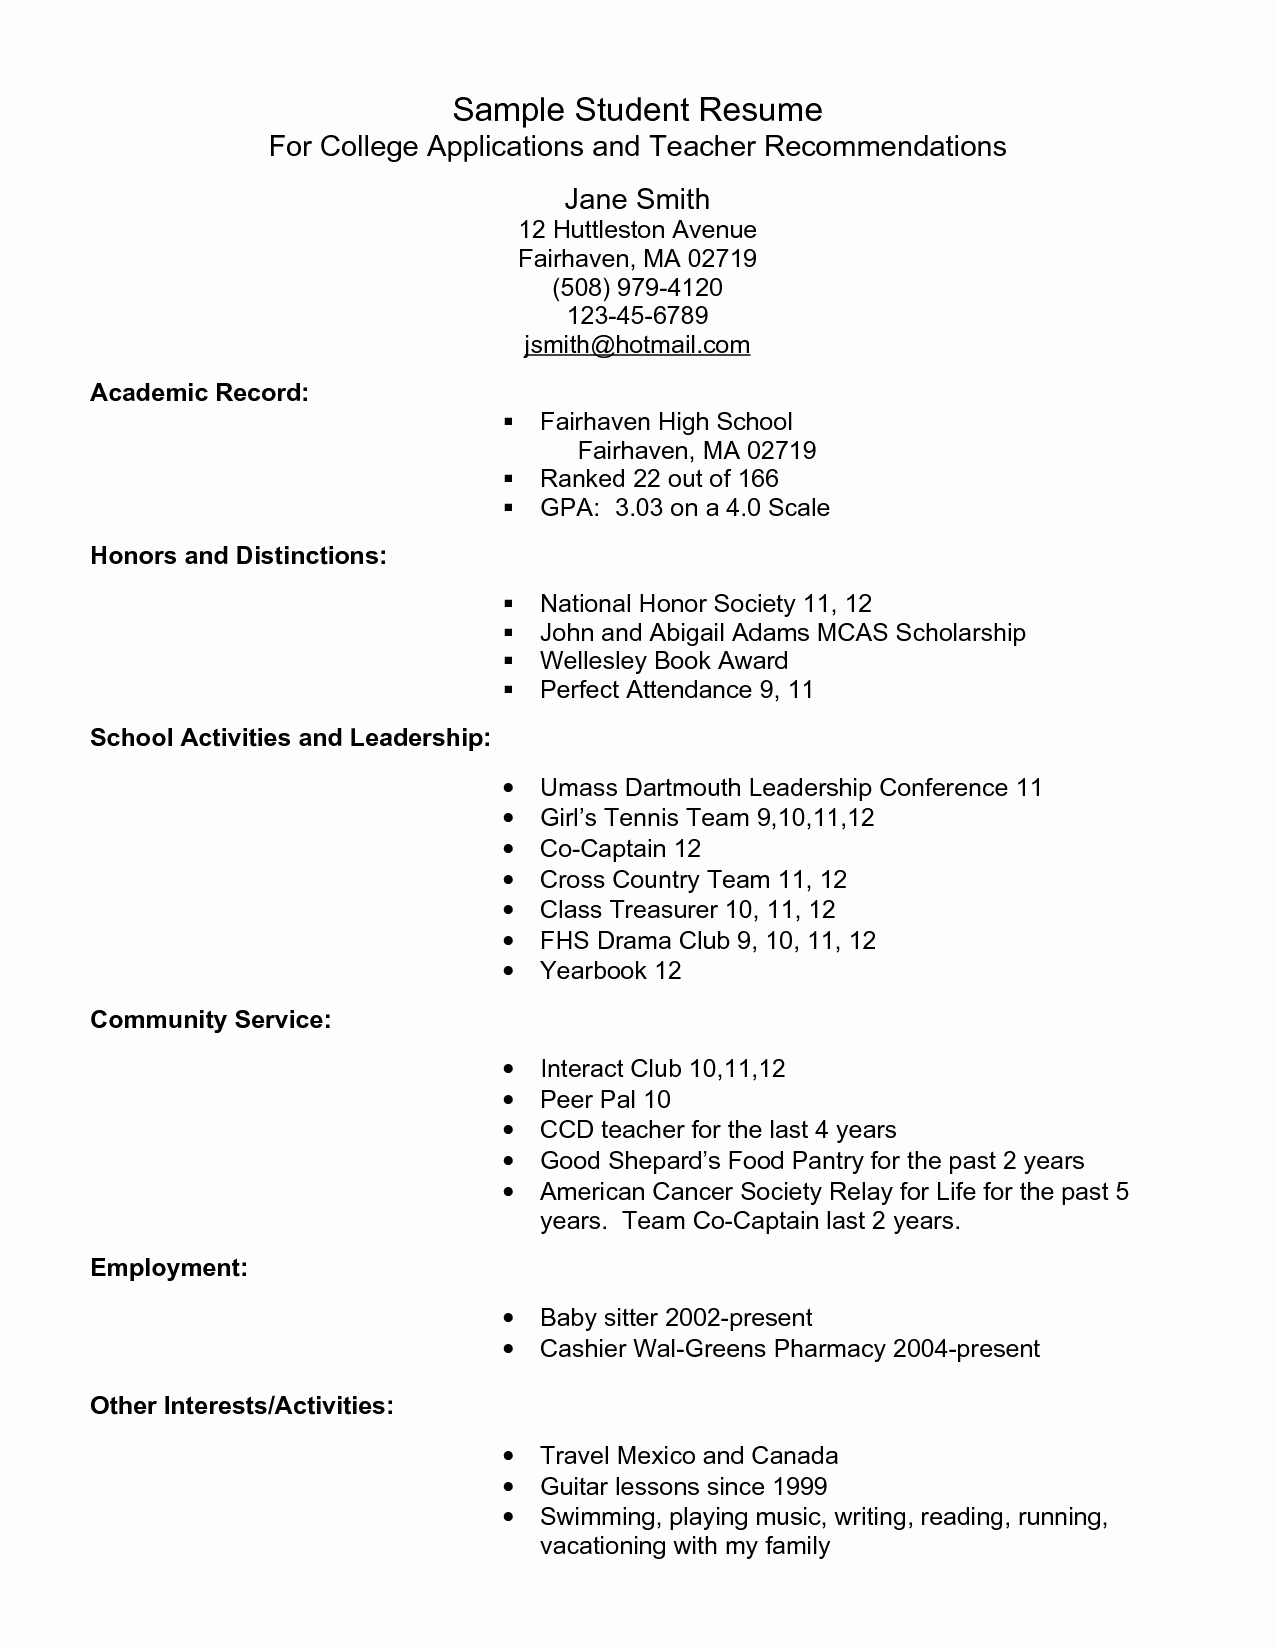 Sample Resume College Student Best Of Example Resume for High School Students for College